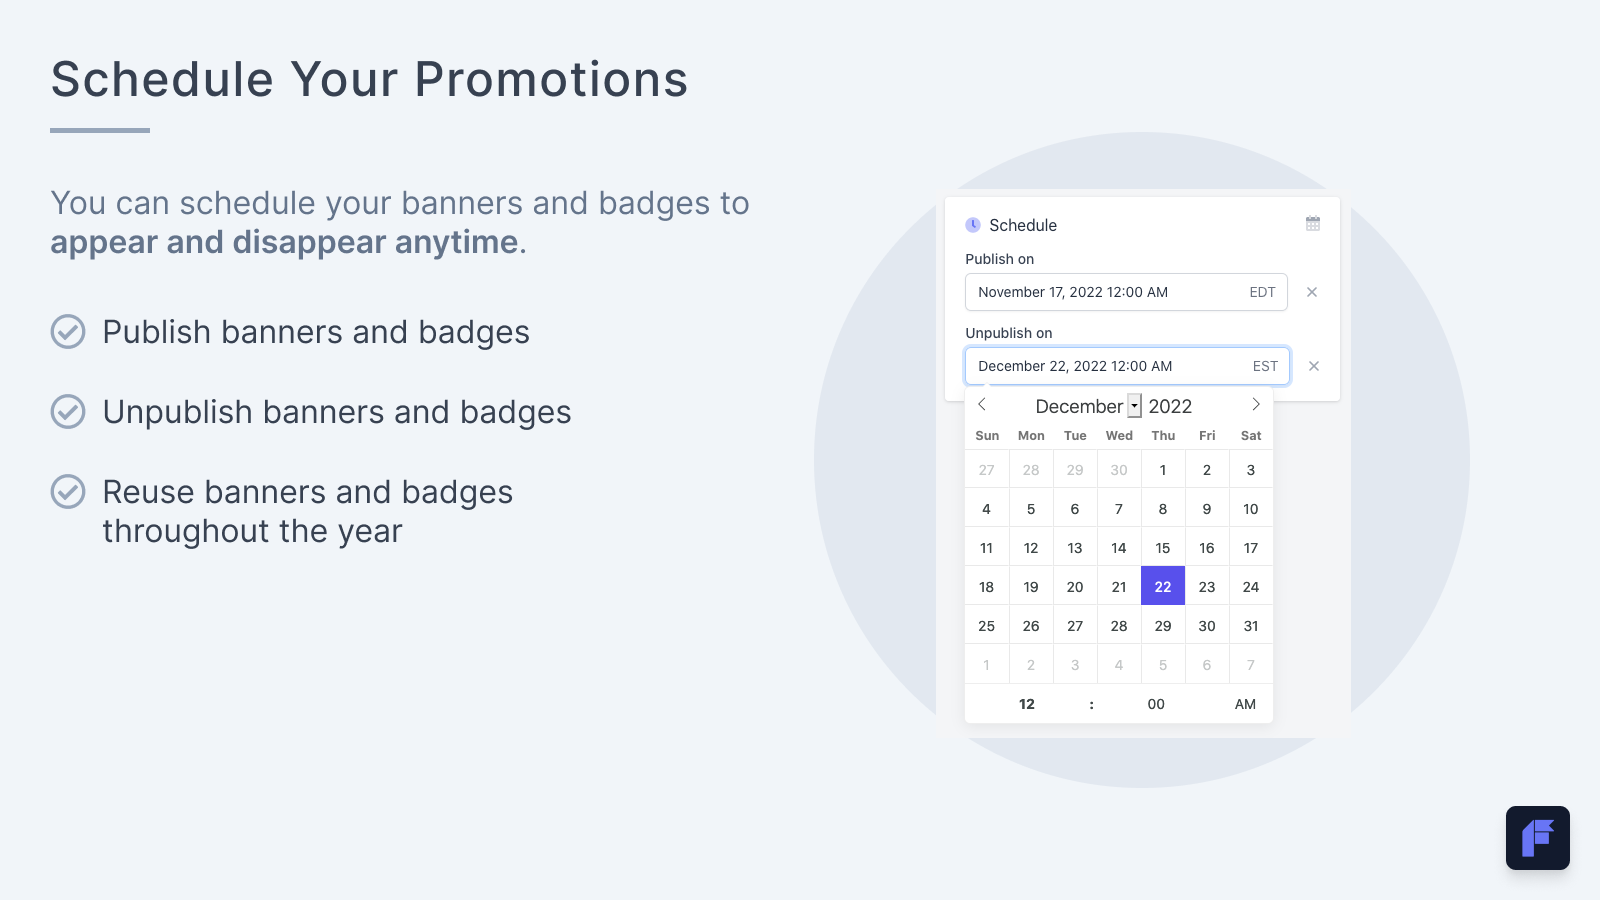 Schedule and reuse product badge and banner promotions